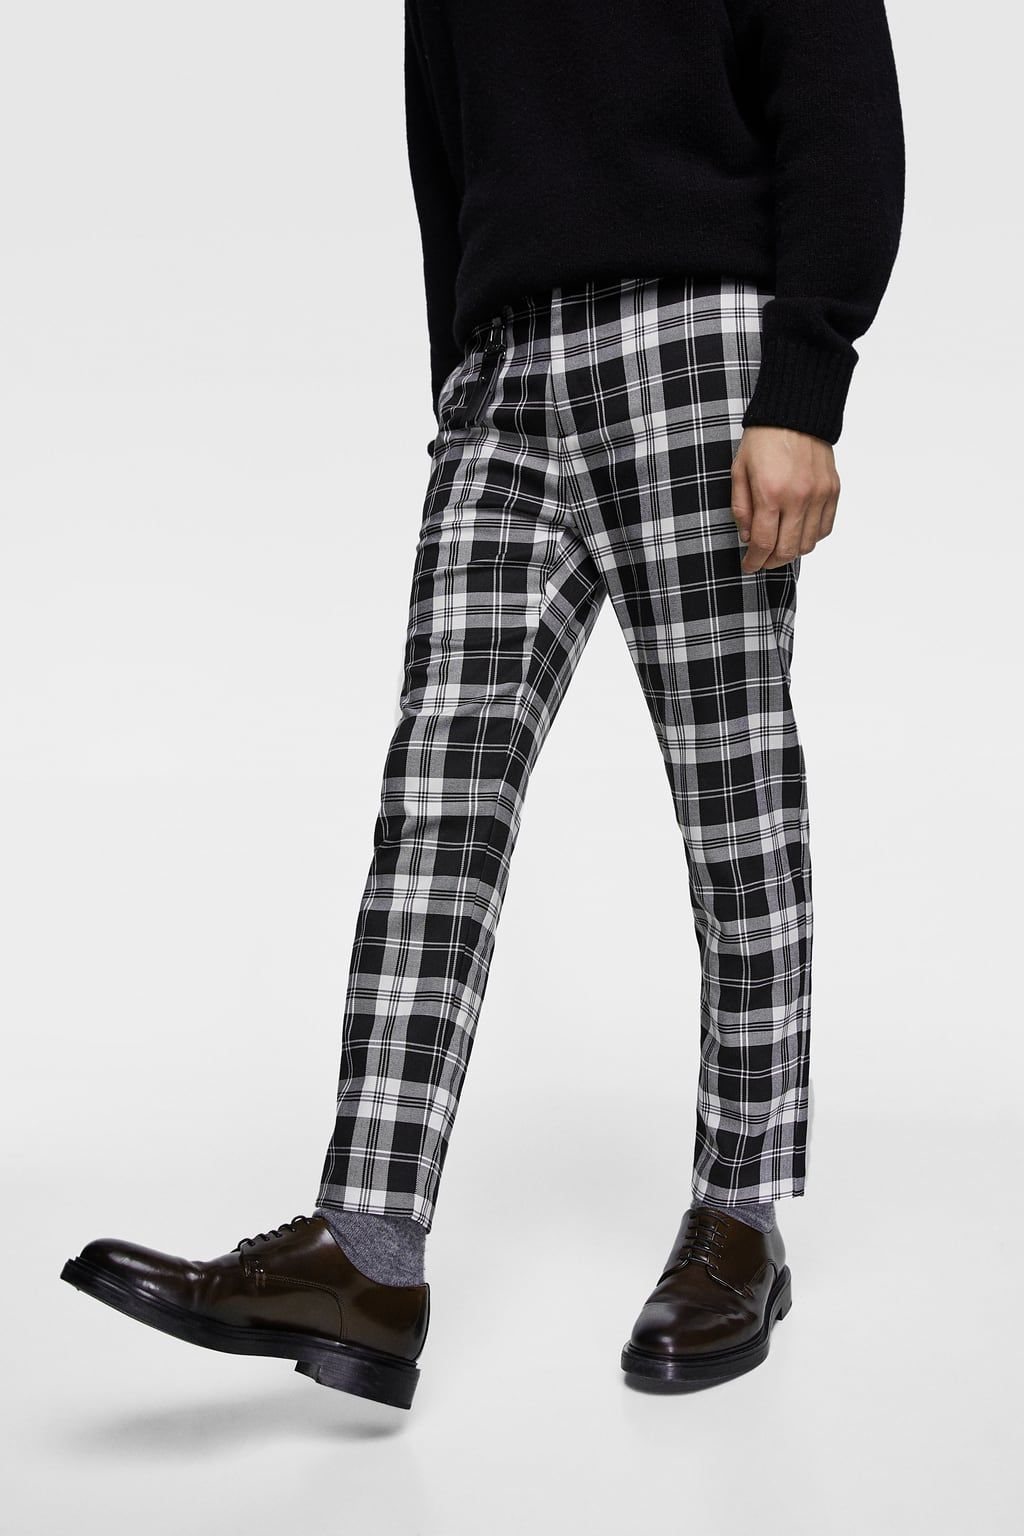 Imagen 2 De Pantalon Cuadros De Zara Pants Outfit Men Mens Plaid Pants Pants Outfit Work